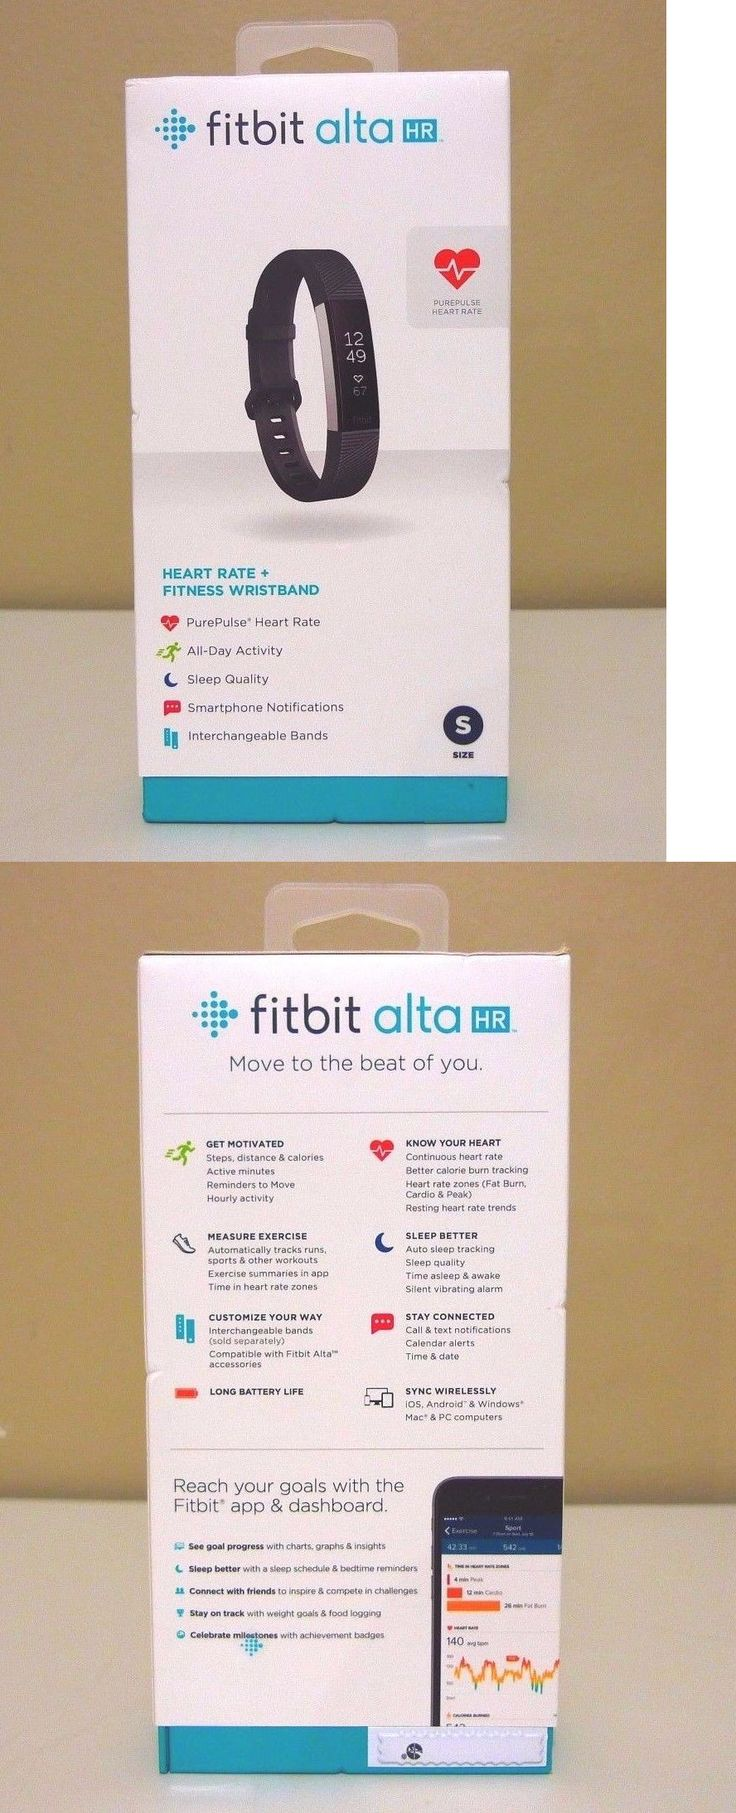 Activity Trackers 179798: Fitbit Alta Fitness Wristband Activity And Sleeping Tracker Fb406bks- New Sealed -> BUY IT NOW ONLY: $109.99 on eBay!